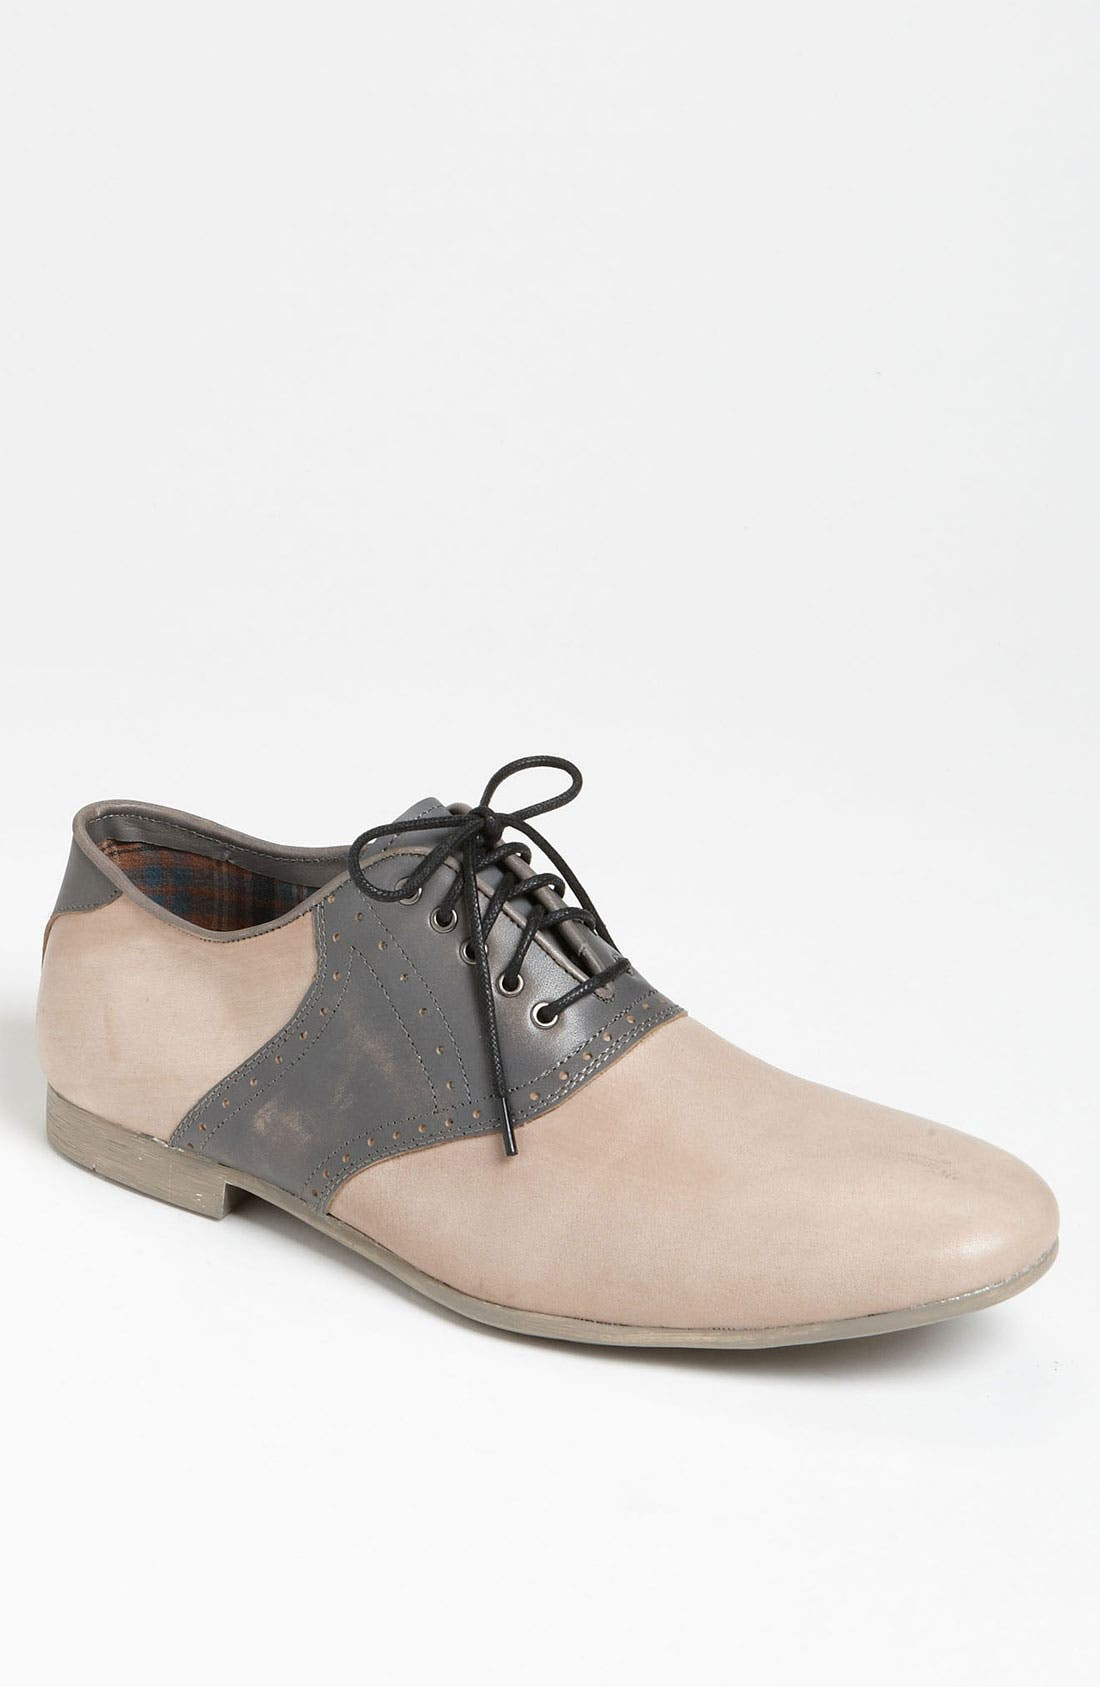 Main Image - Bed Stu 'Orleans' Saddle Shoe (Online Only)